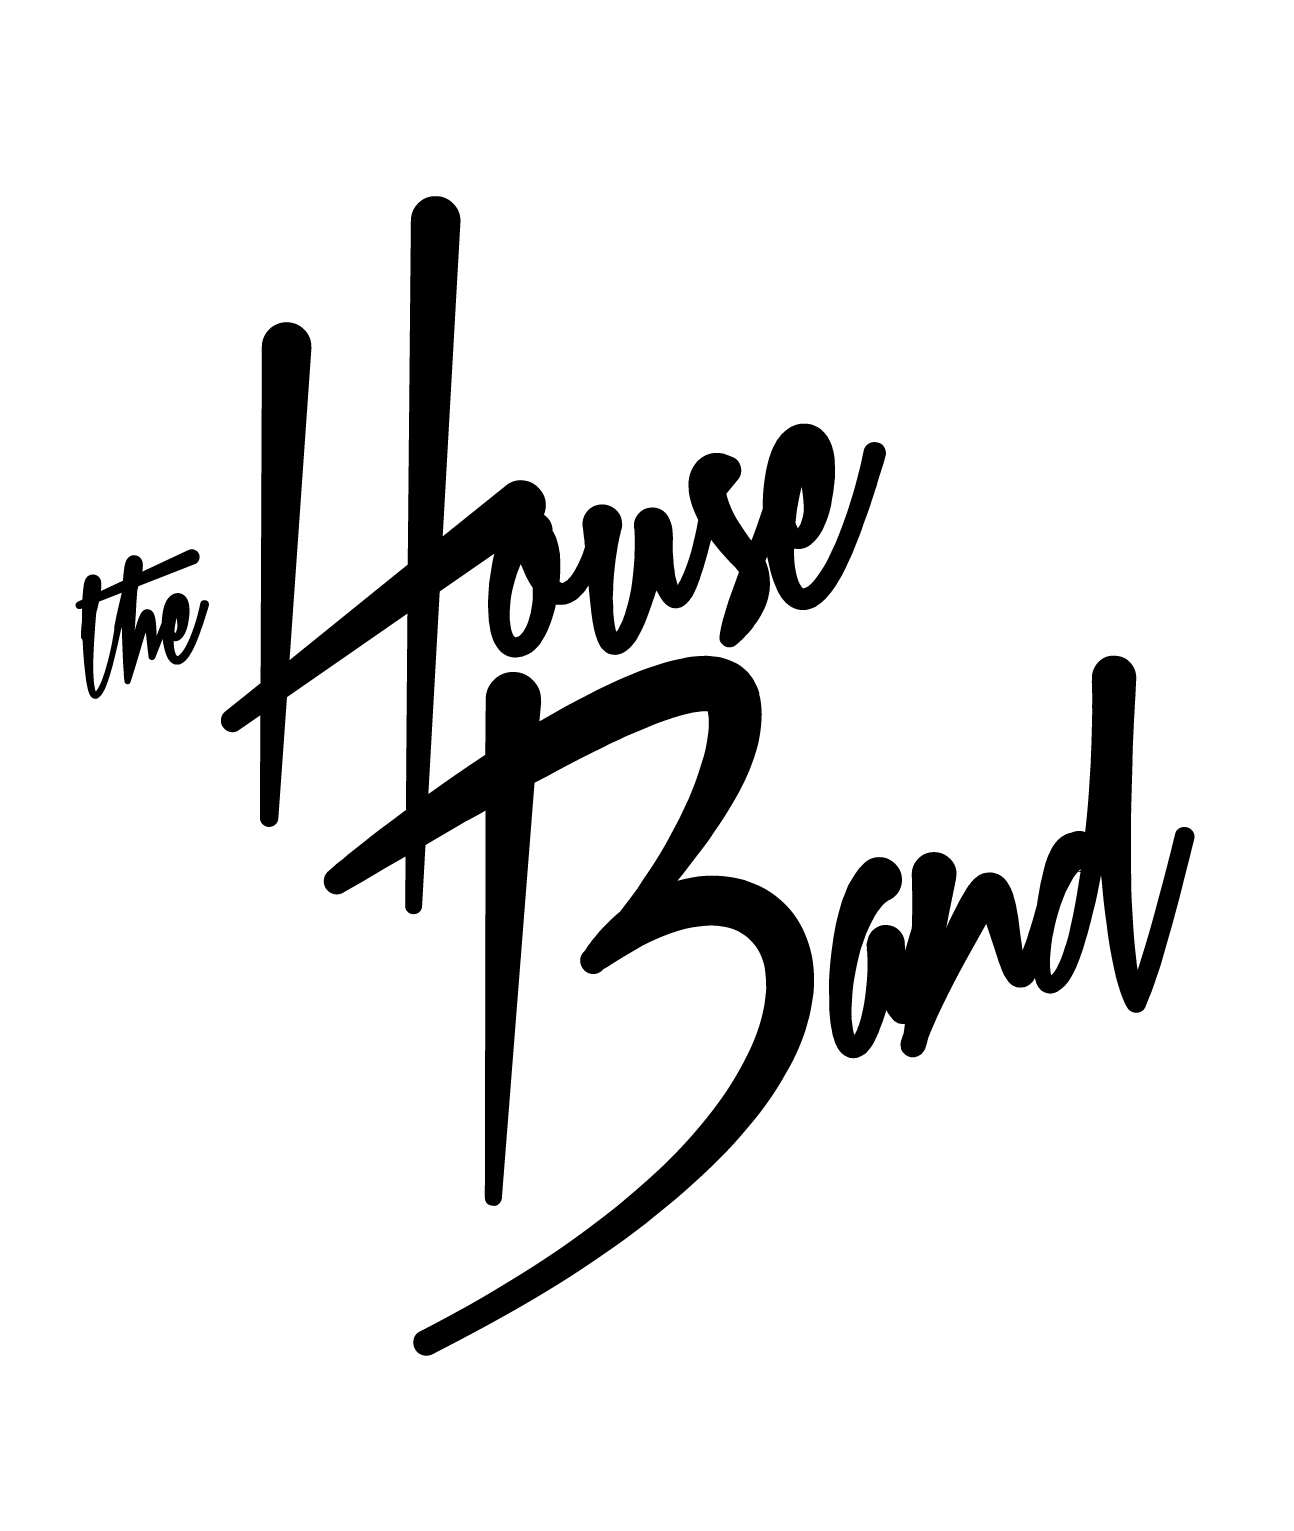 The Houseband – logo 1